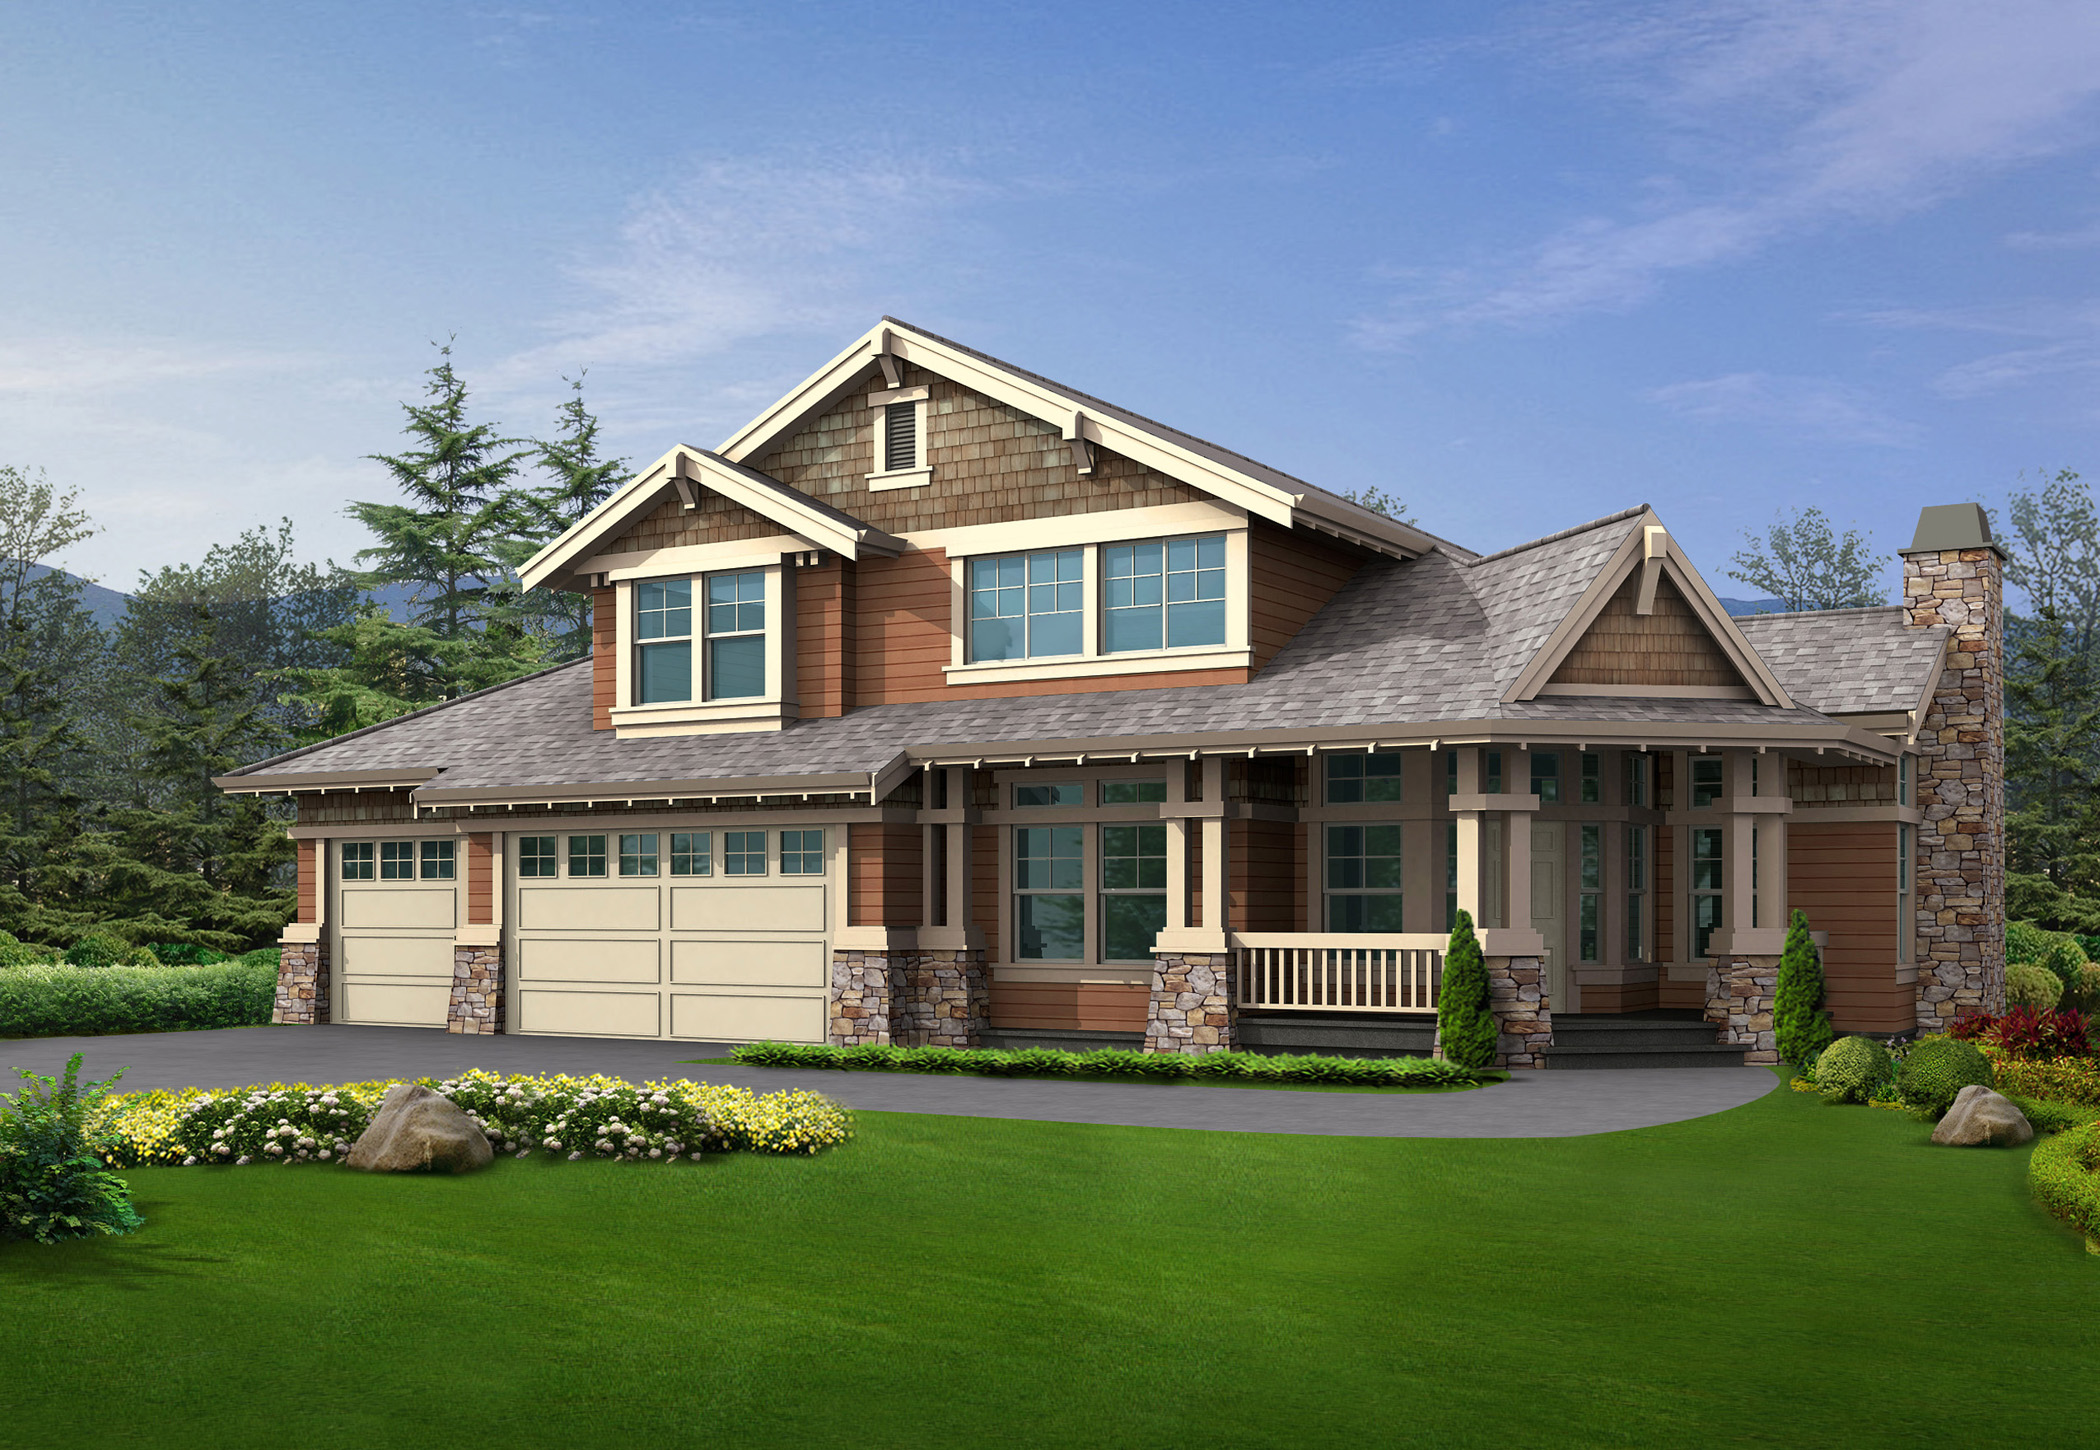 Beautiful home for a corner lot 23106jd architectural for Pretty house plans